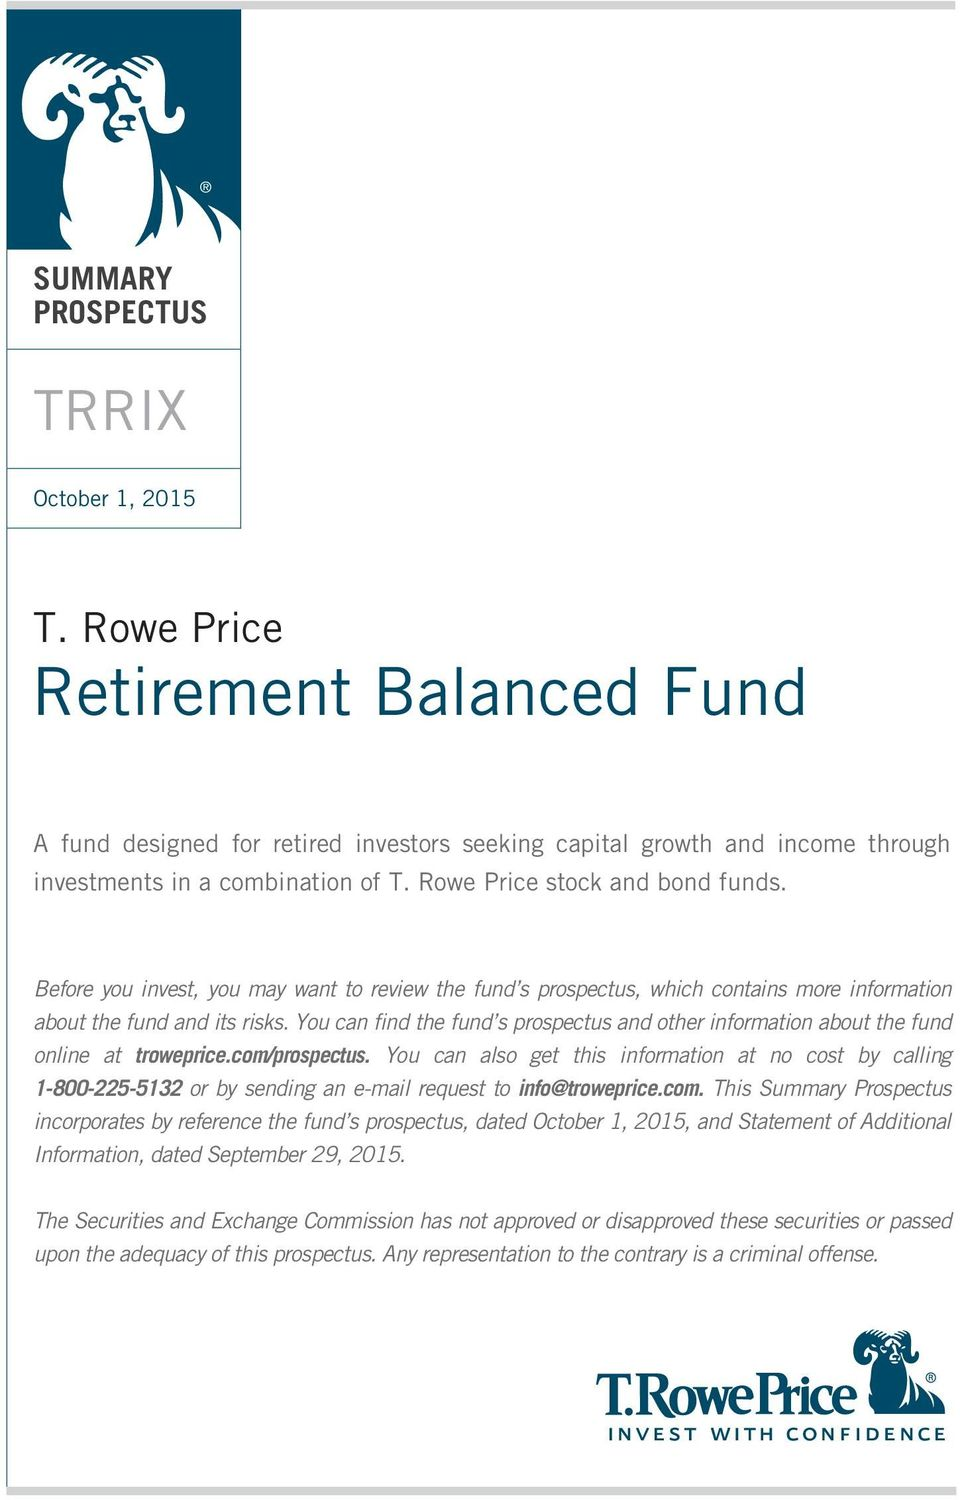 You can find the fund s prospectus and other information about the fund online at troweprice.com/prospectus.